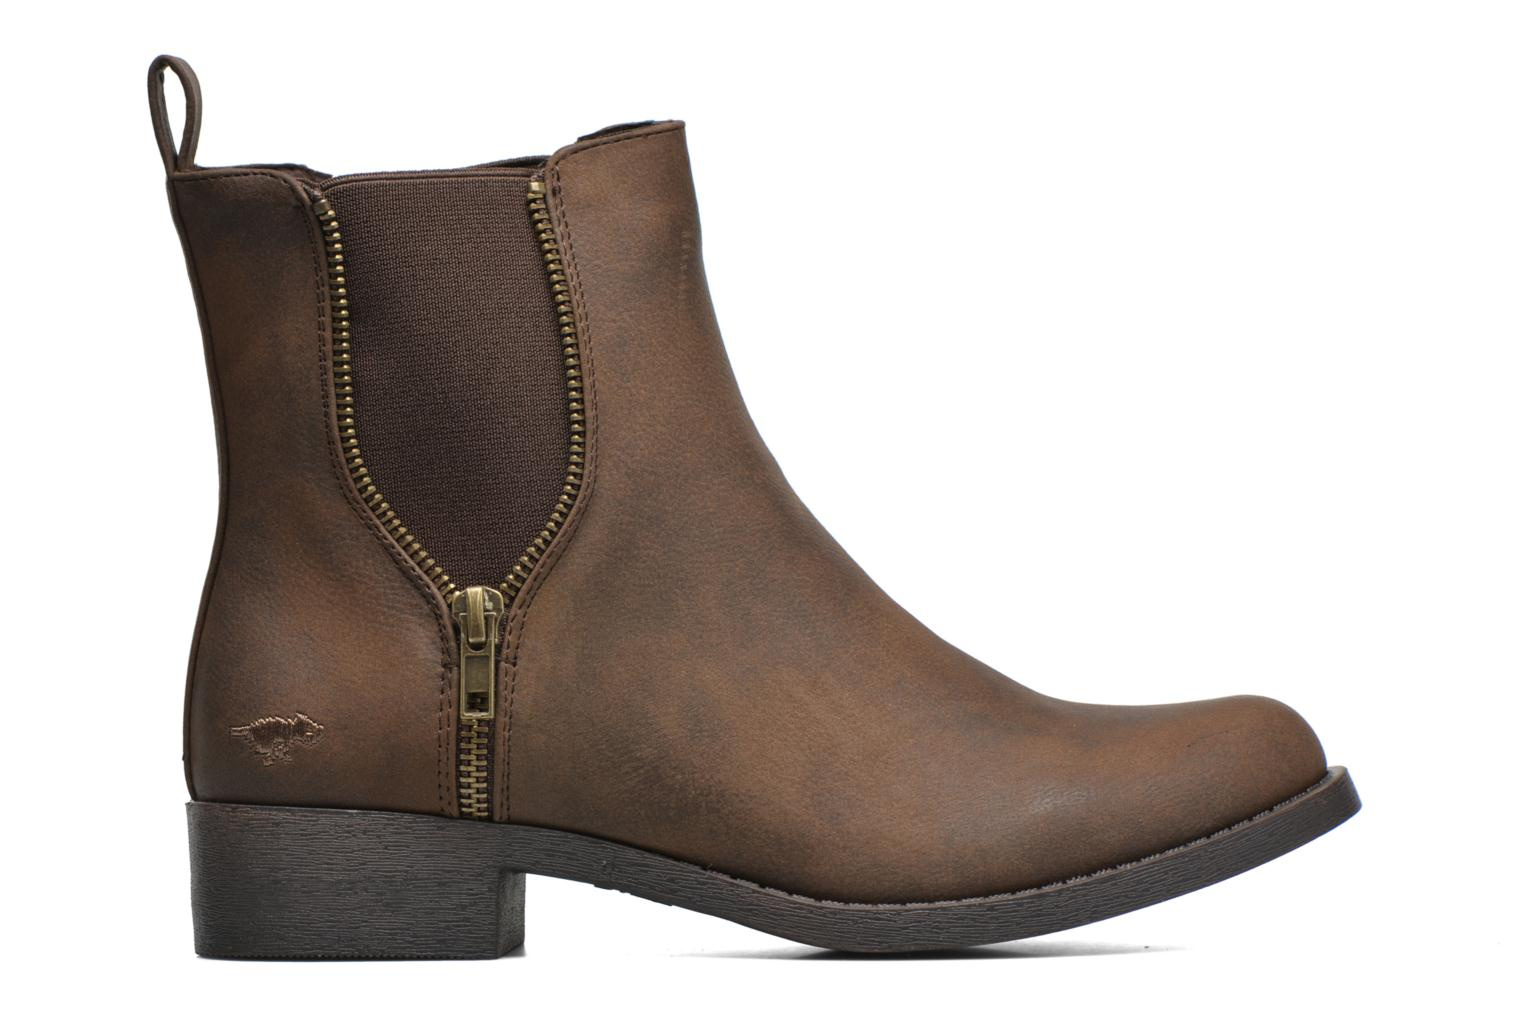 Bottines et boots Rocket Dog Camilla GM Marron vue derrière